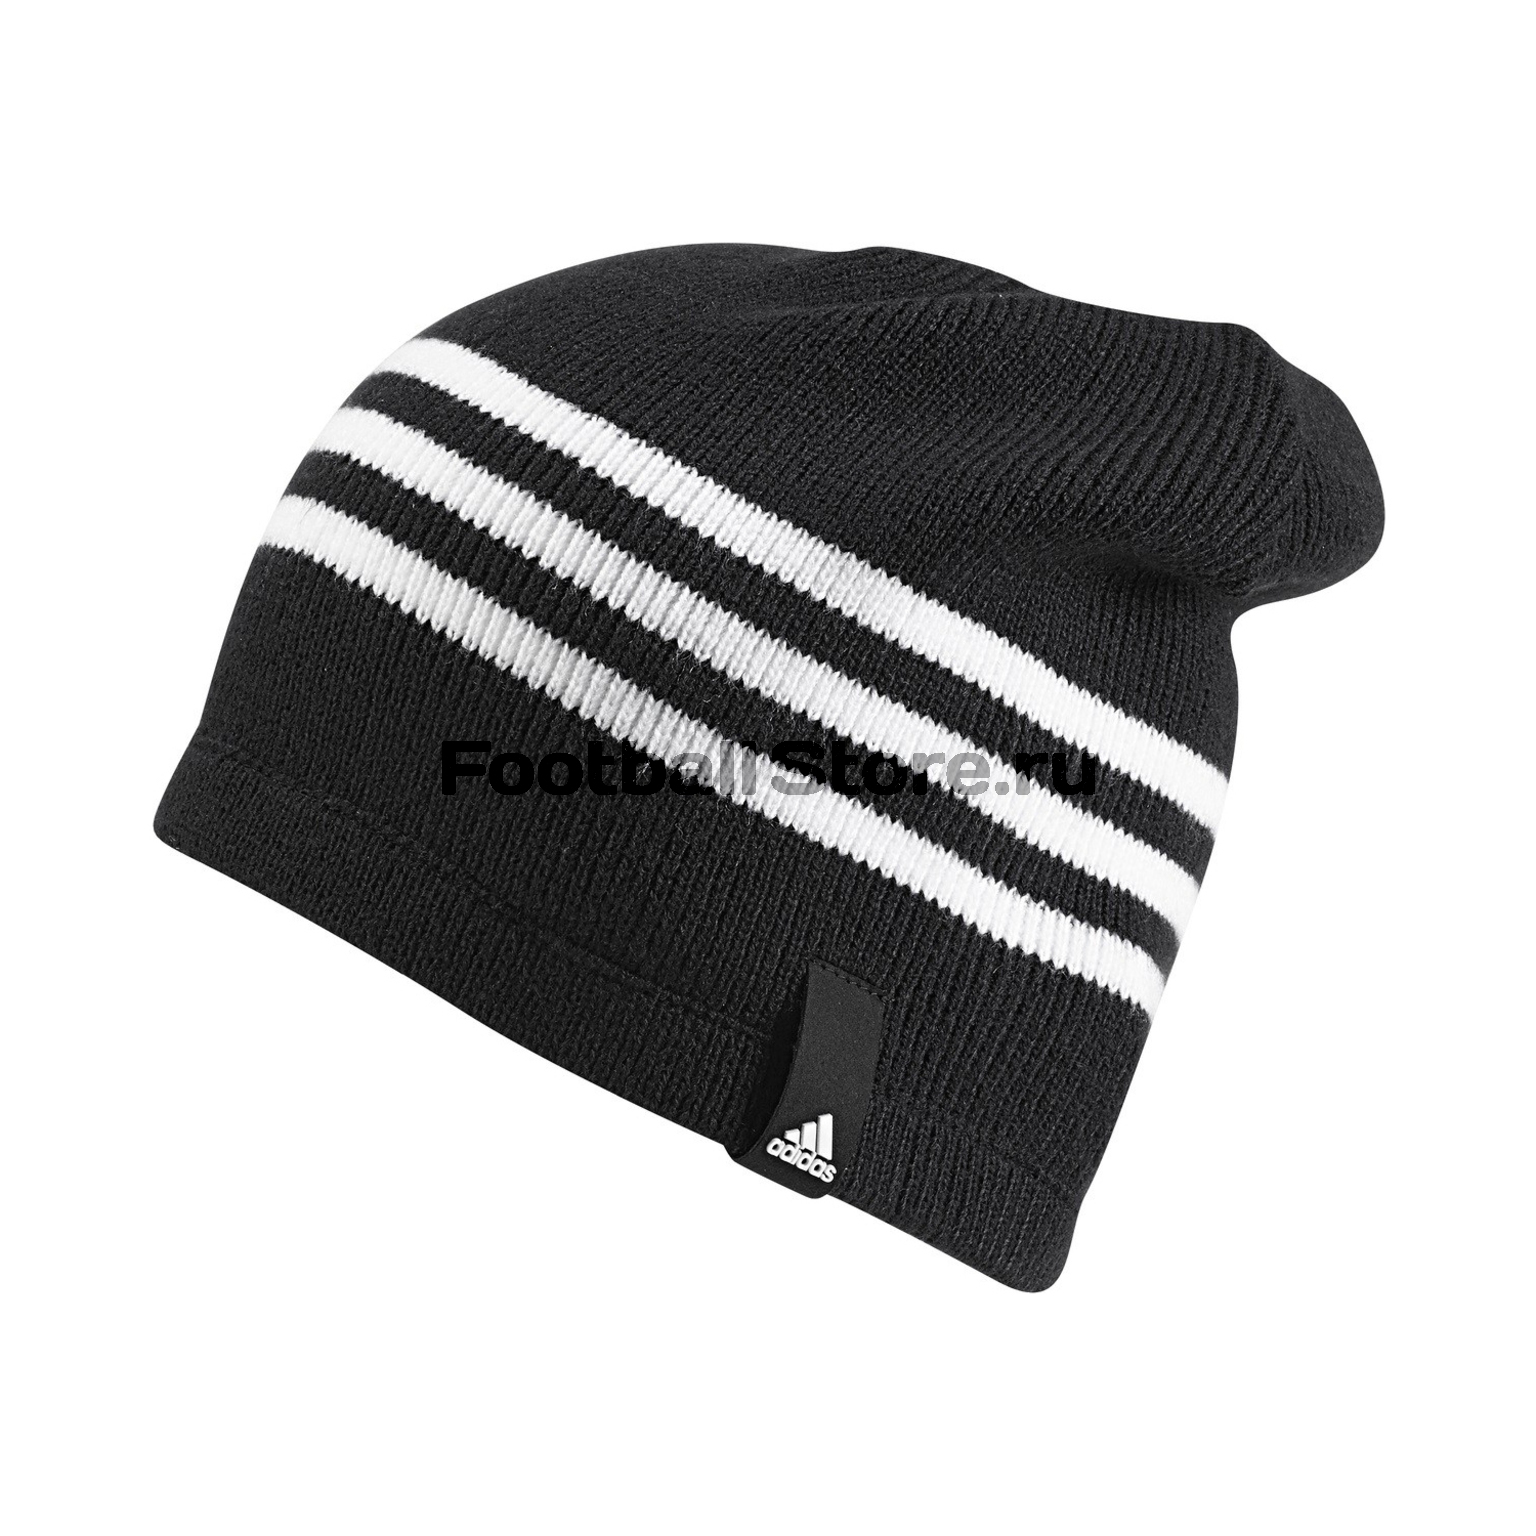 Шапка Adidas Tiro Beanie S30293 рюкзак adidas tiro bp bs4761